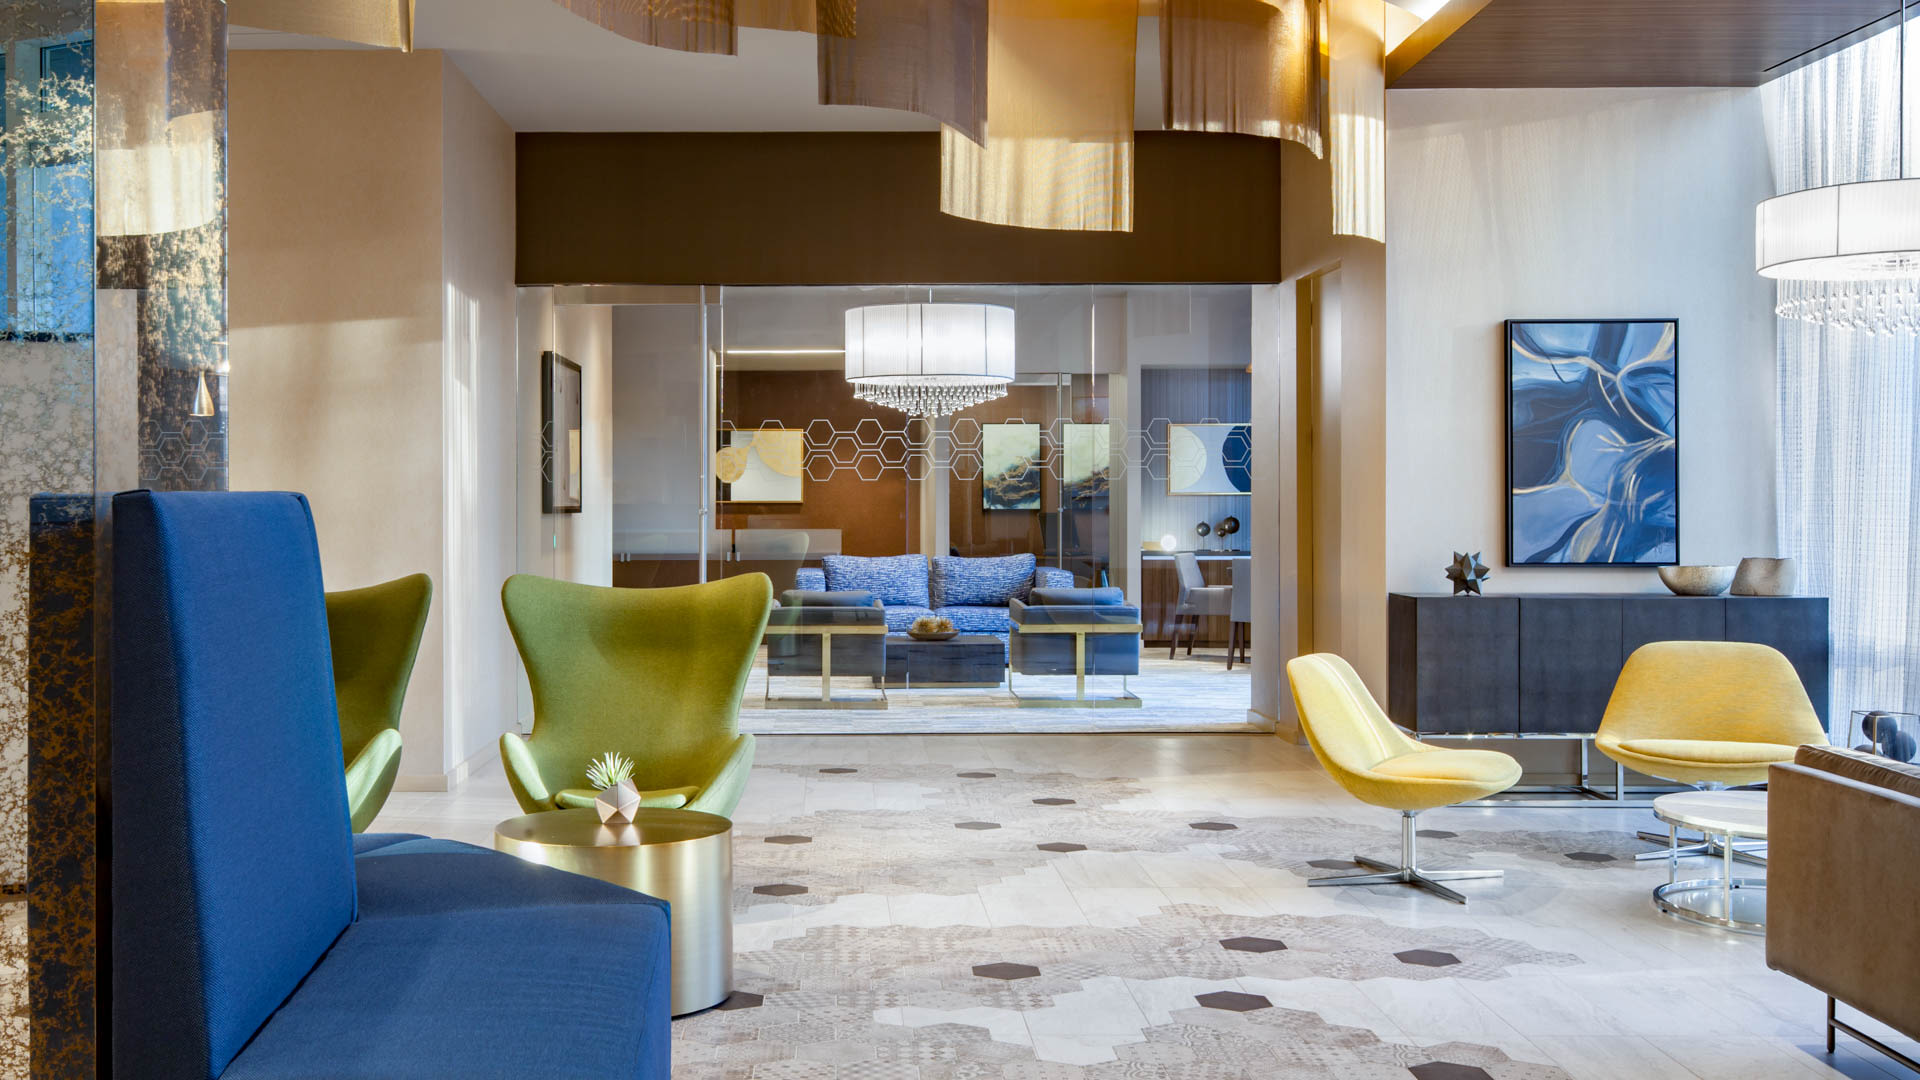 Virginia Square Apartments - Lobby